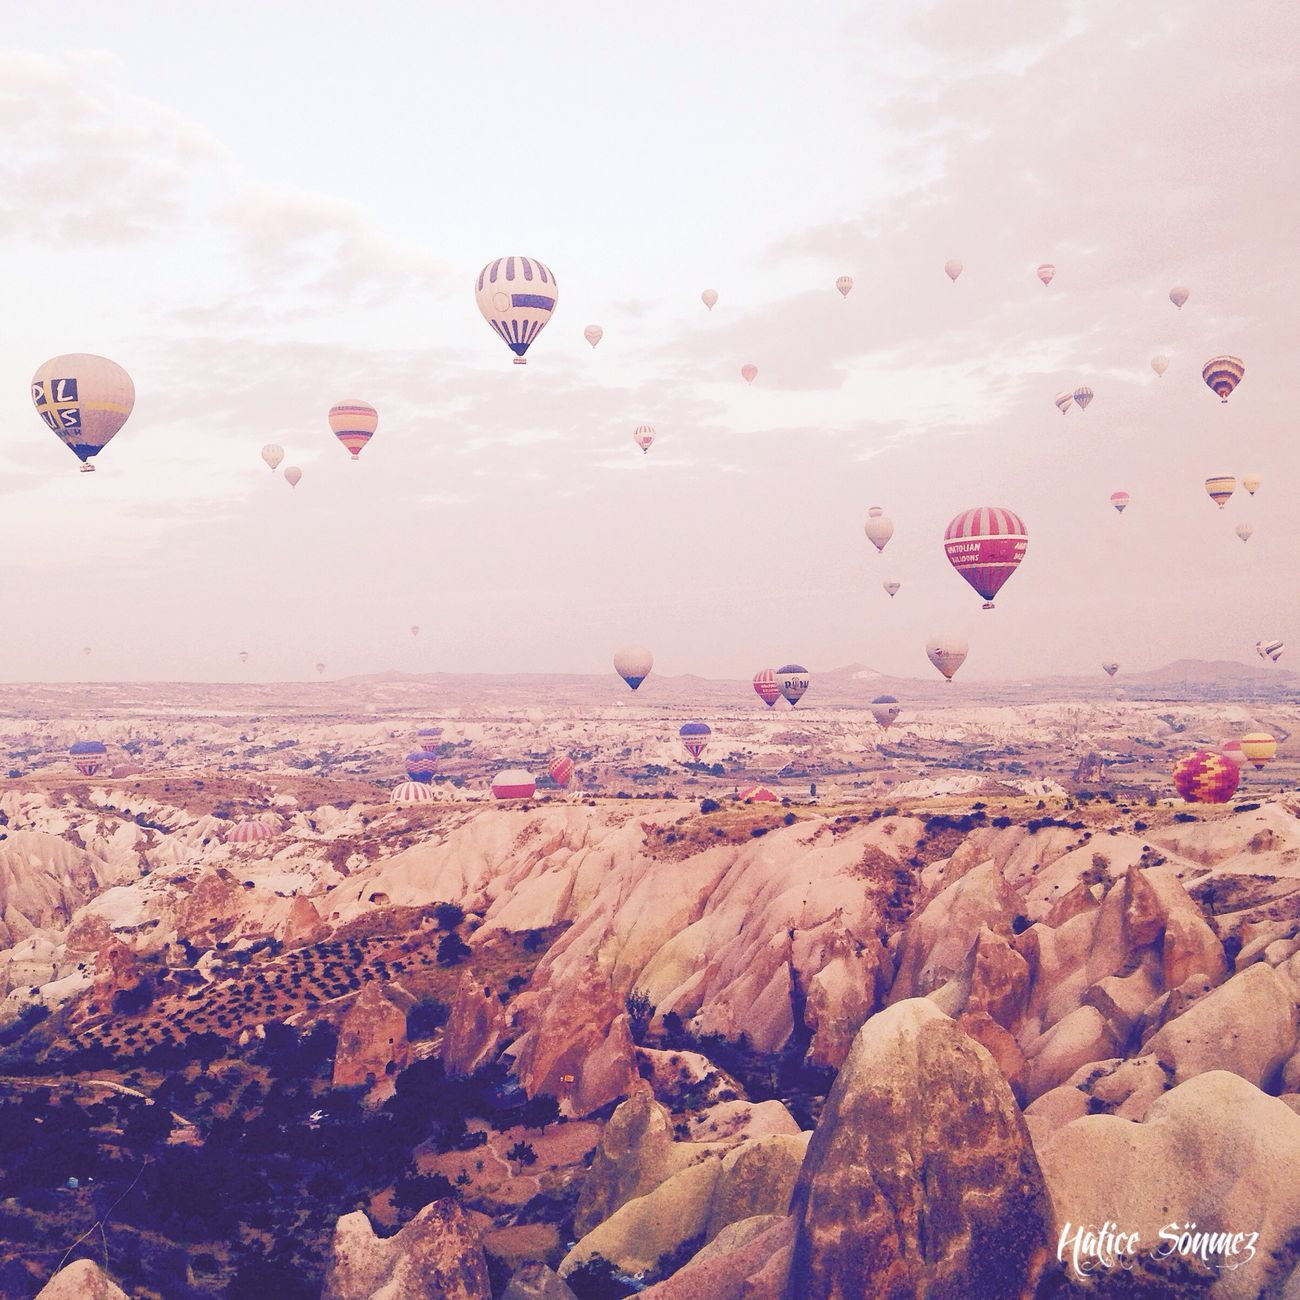 Taking Photos Balloons Enjoying Life Hanging Out Check This Out The Moment - 2015 EyeEm Awards Hello World Relaxing Capadocia Win An EyeEm T-Shirt